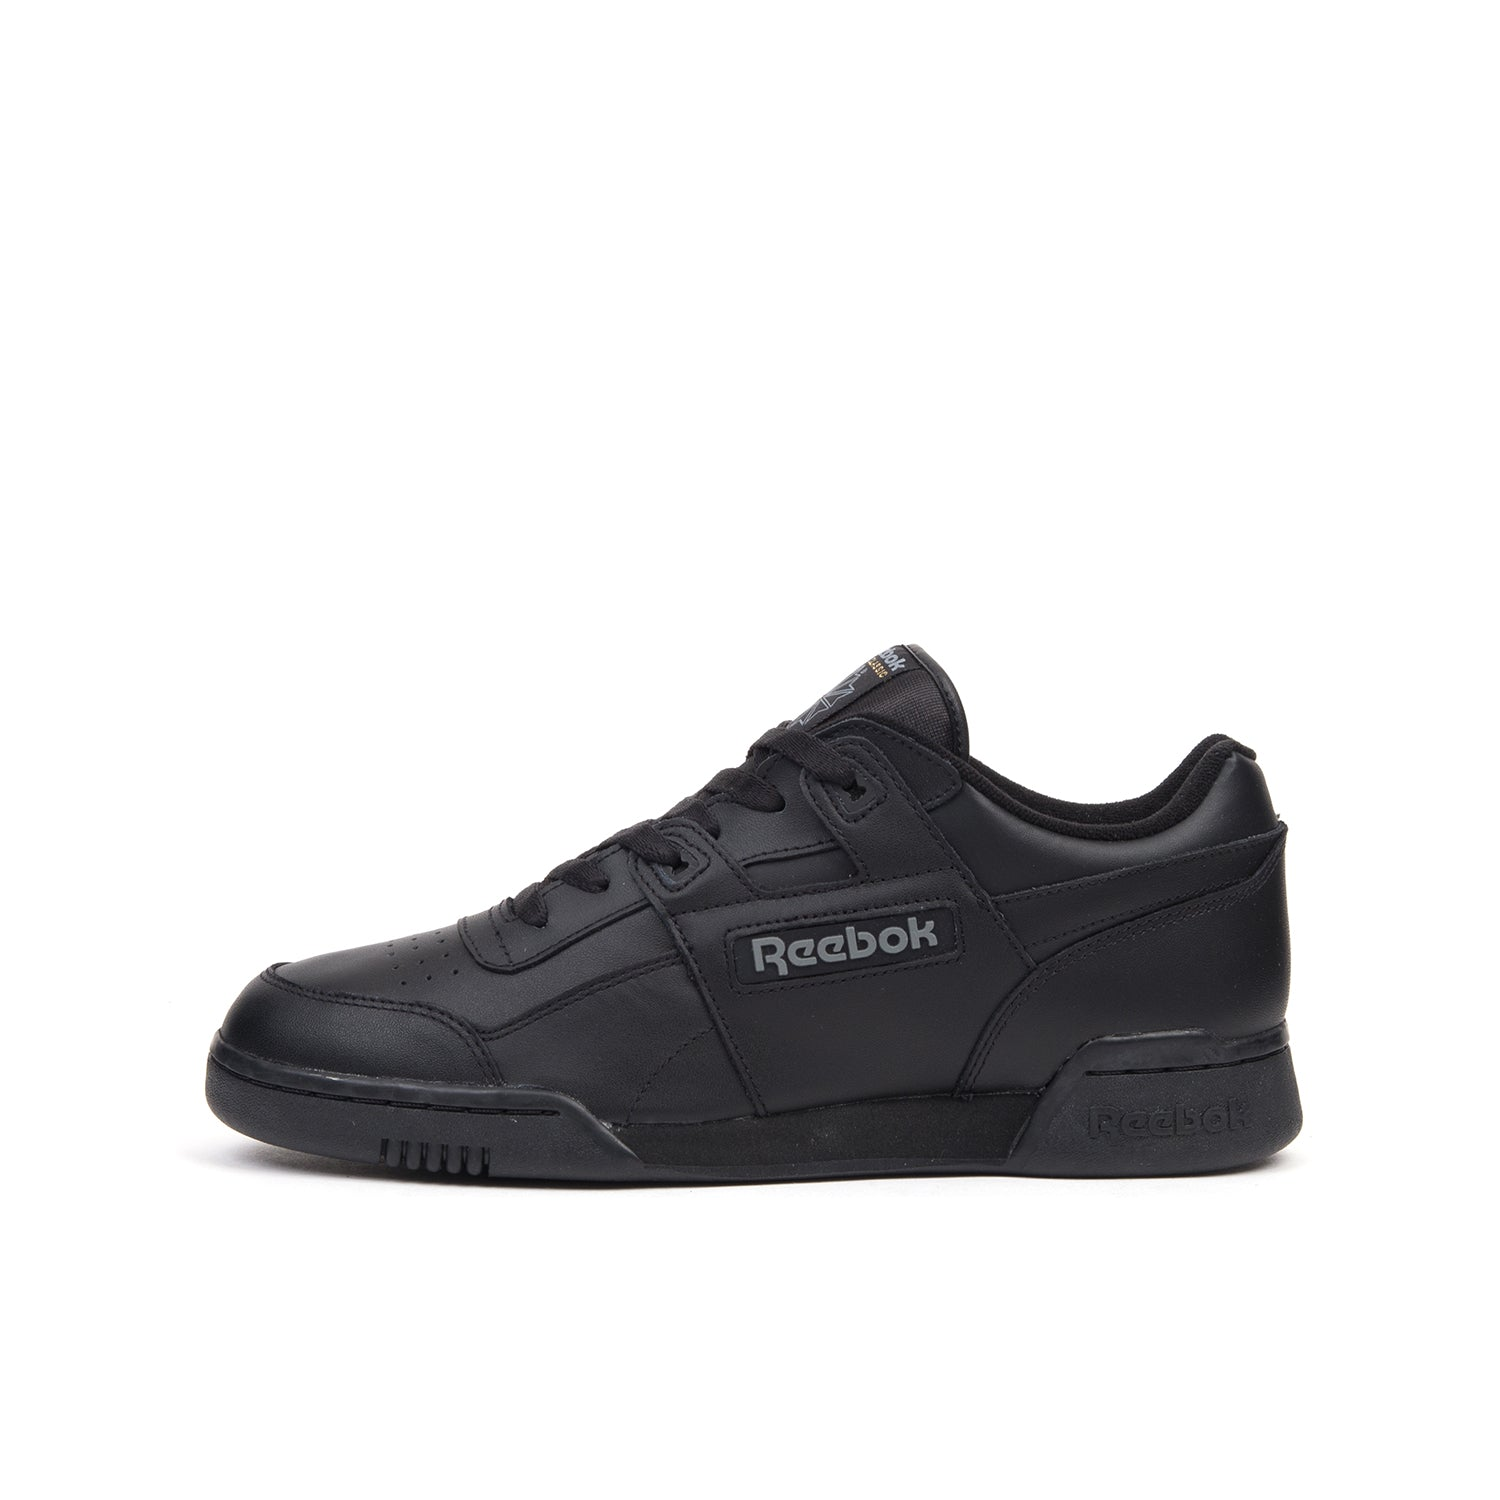 bfcd0e54e68 Reebok Workout Plus Black Charcoal - 2760 – Concrete